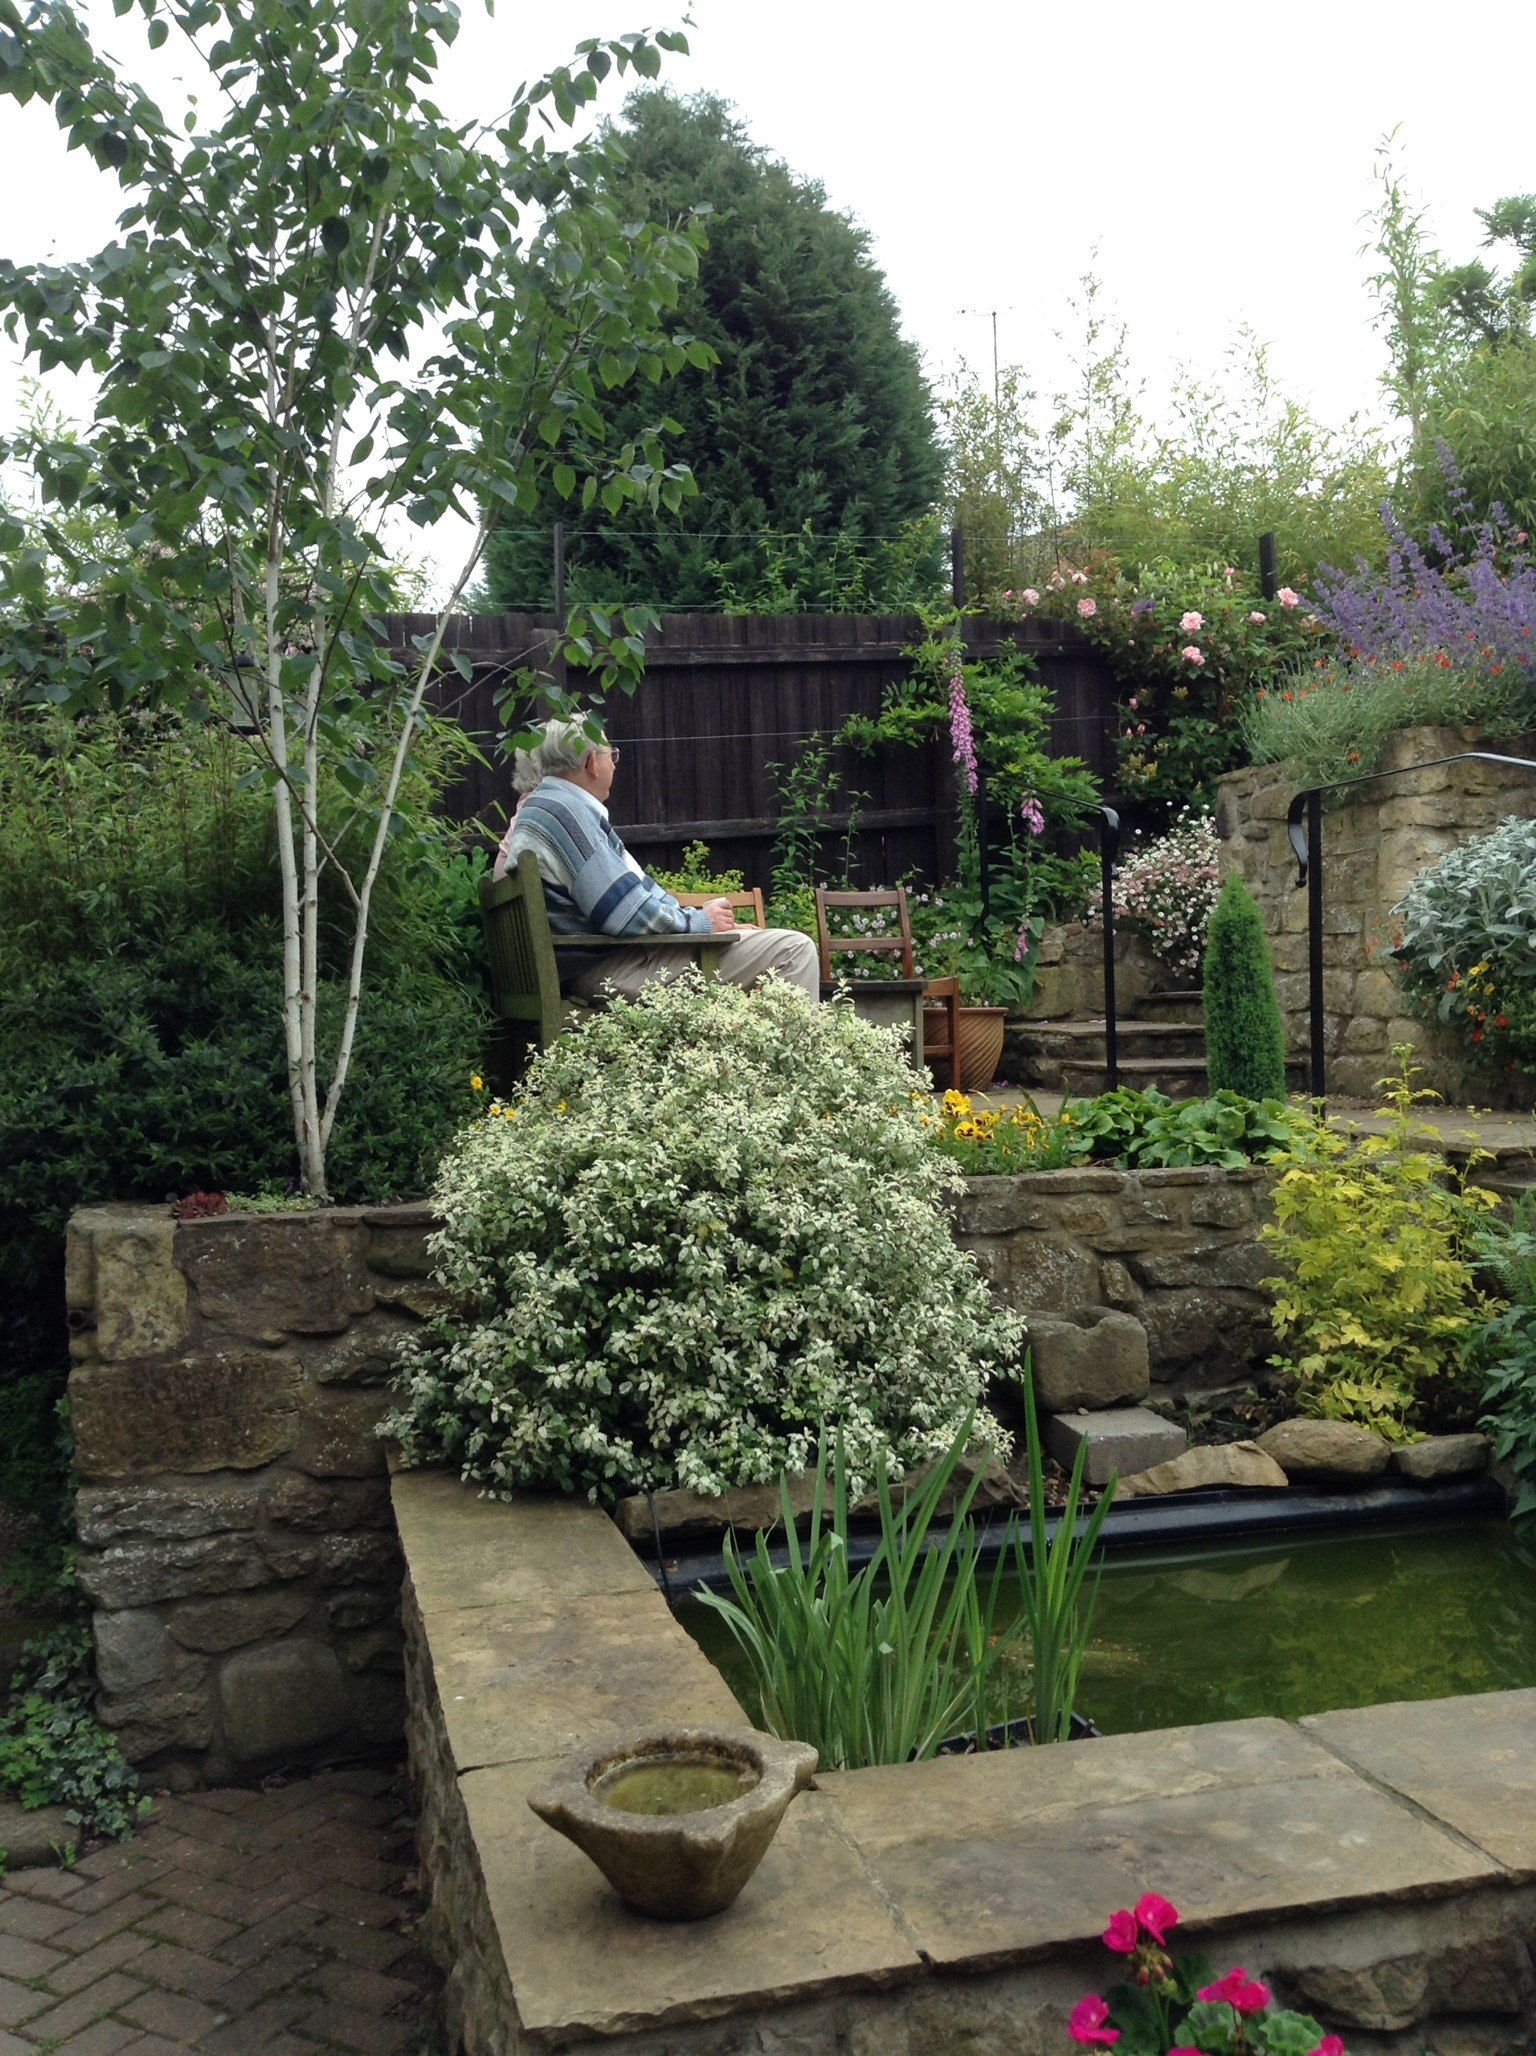 Brenda And Anthony Opened Their Newly Designed Garden In Early Summer.